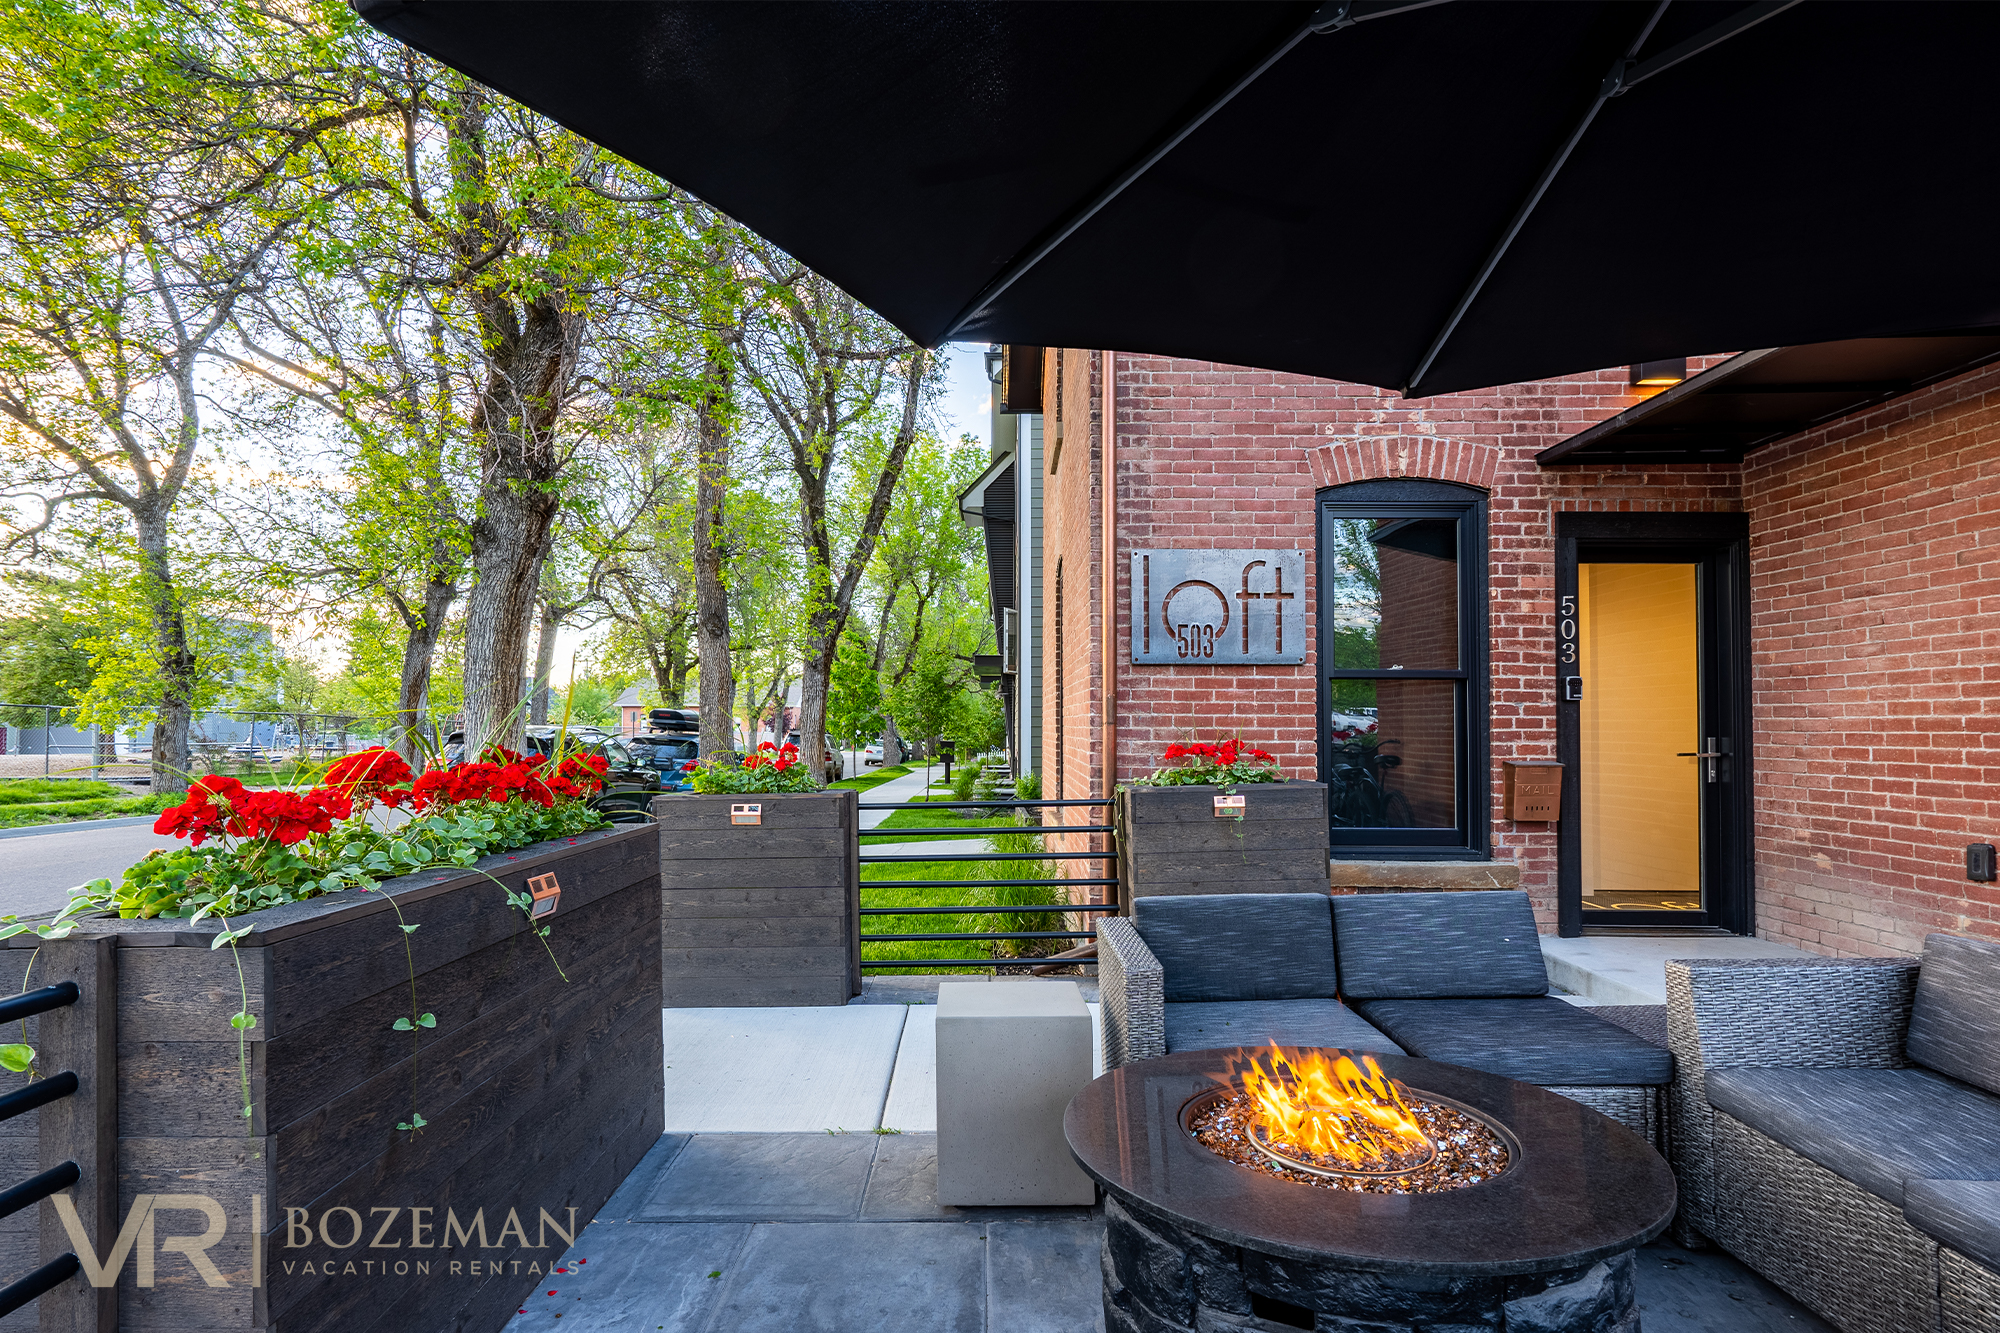 Loft503 | A VRBozeman Property in the Heart of the City